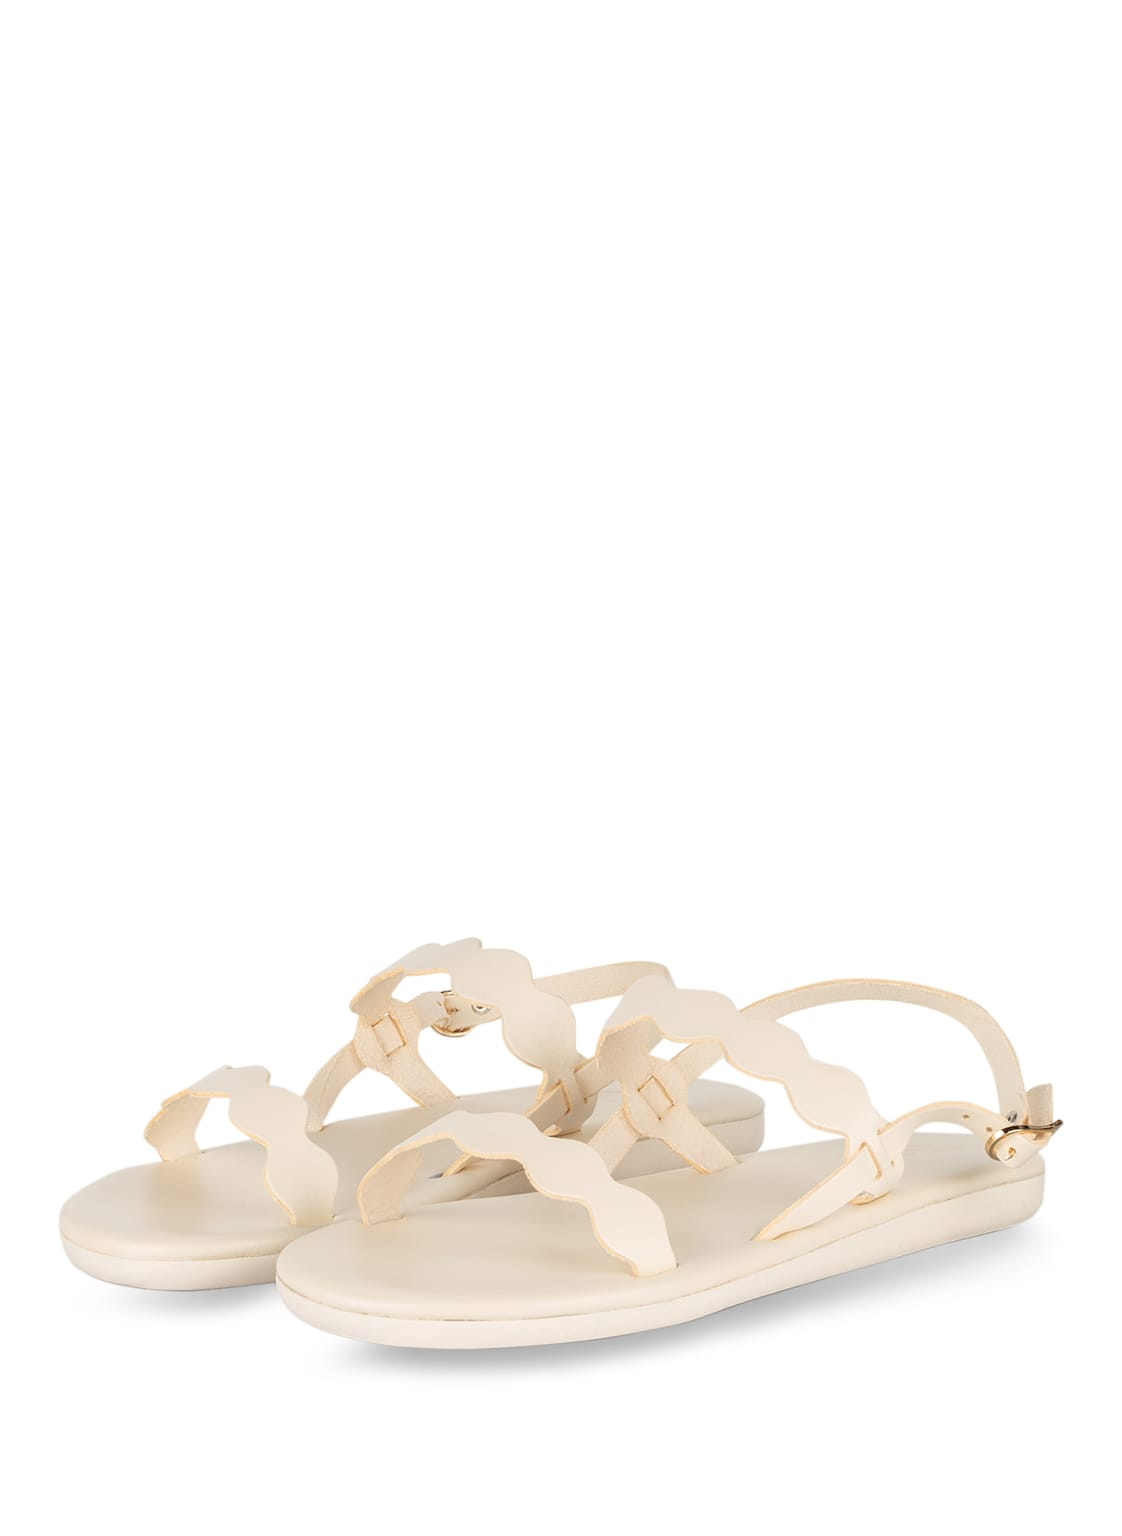 Image of Ancient Greek Sandals Sandalen Afros weiss